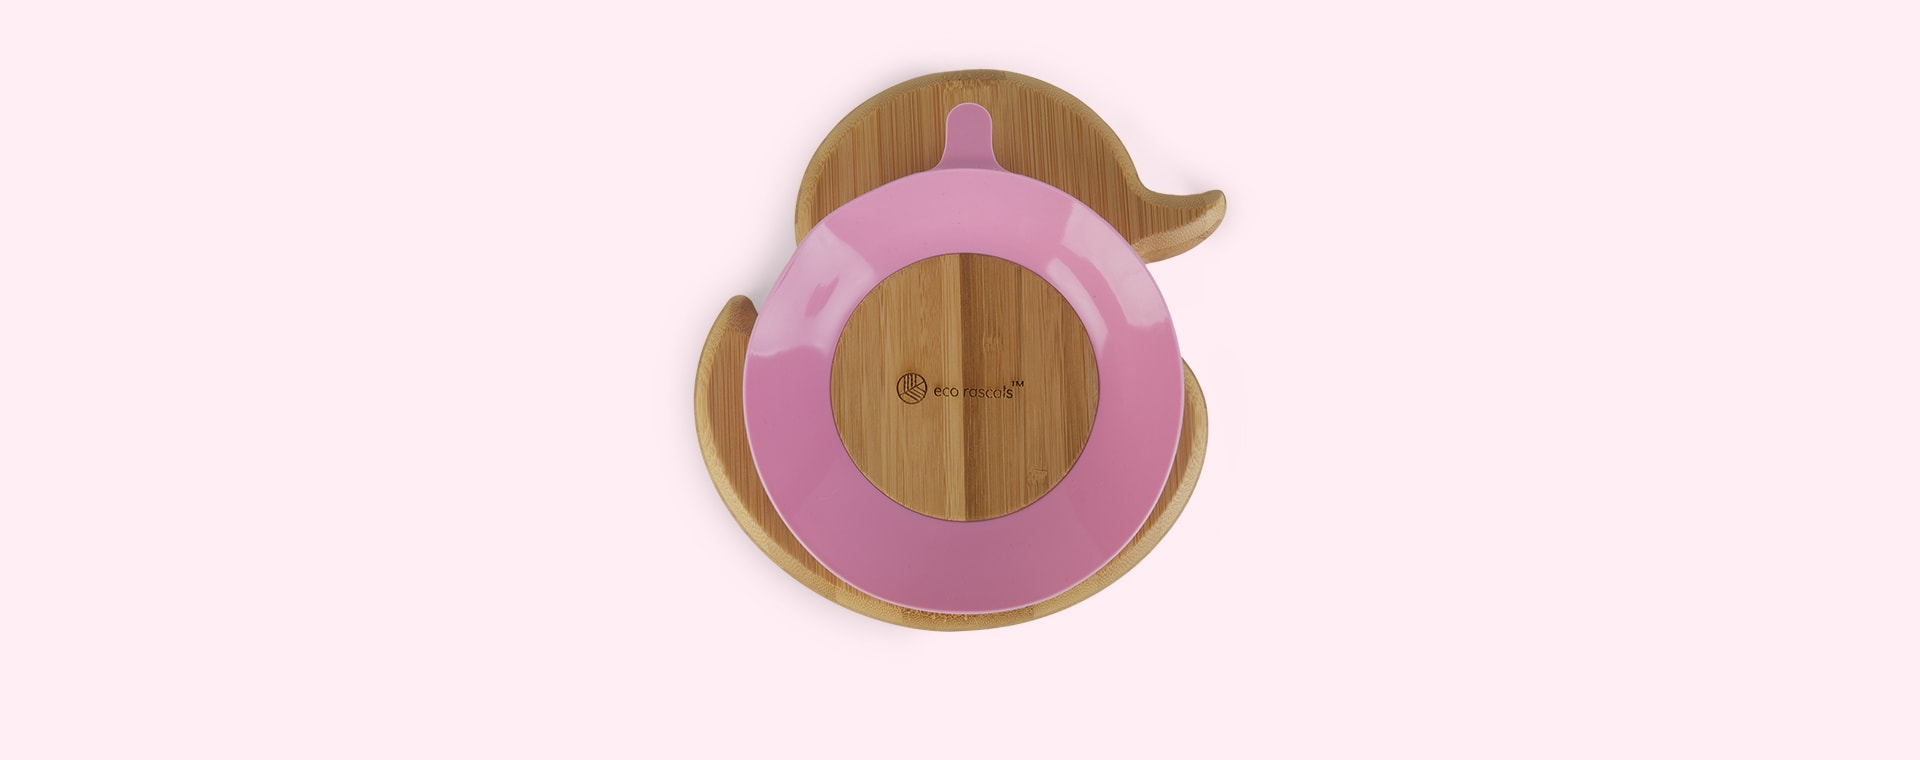 Pink eco rascals Bamboo Suction Duck Plate